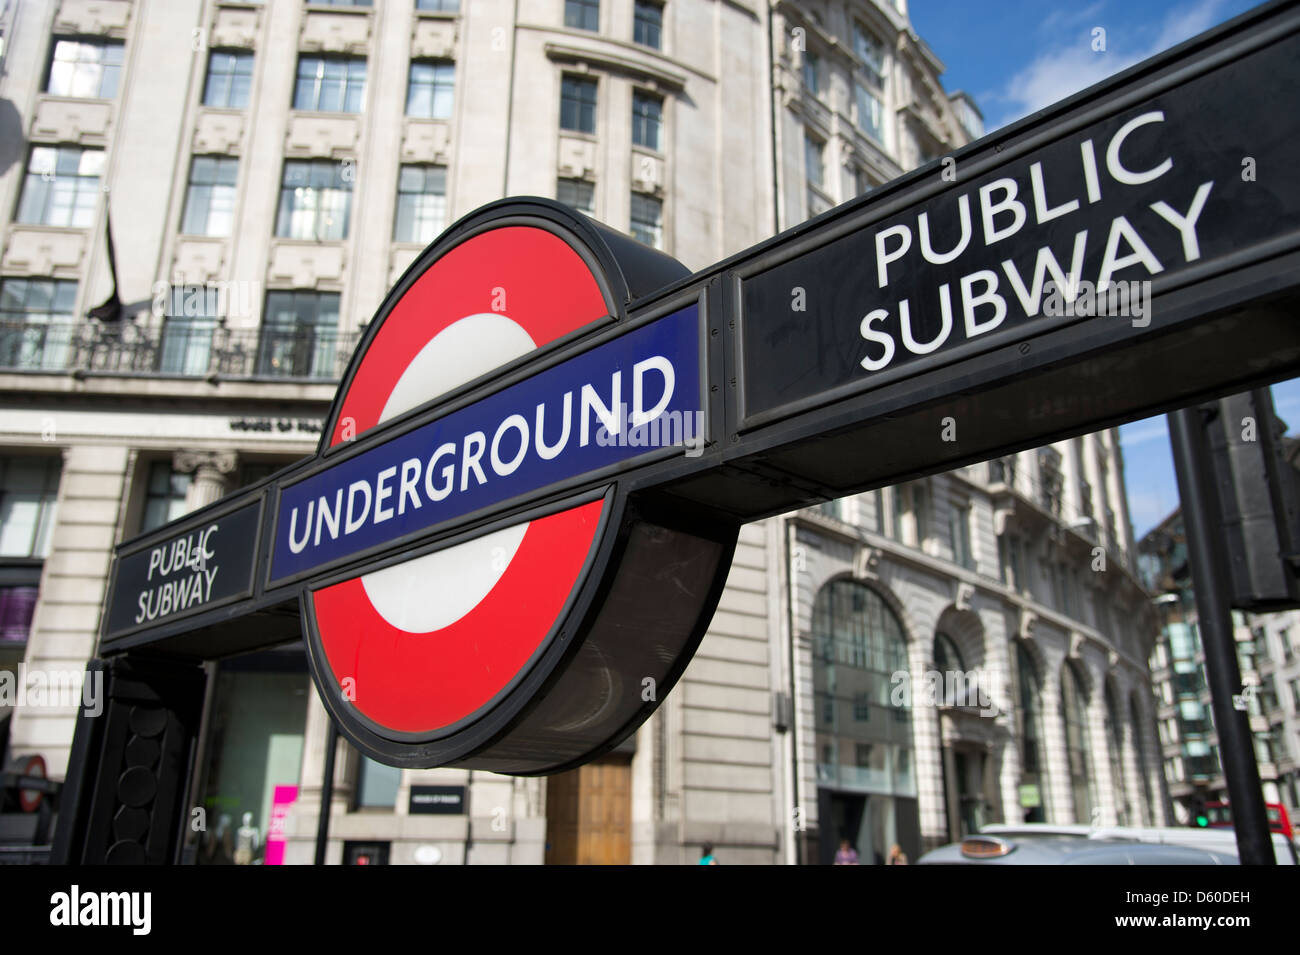 London Underground sign, London, UK - Stock Image